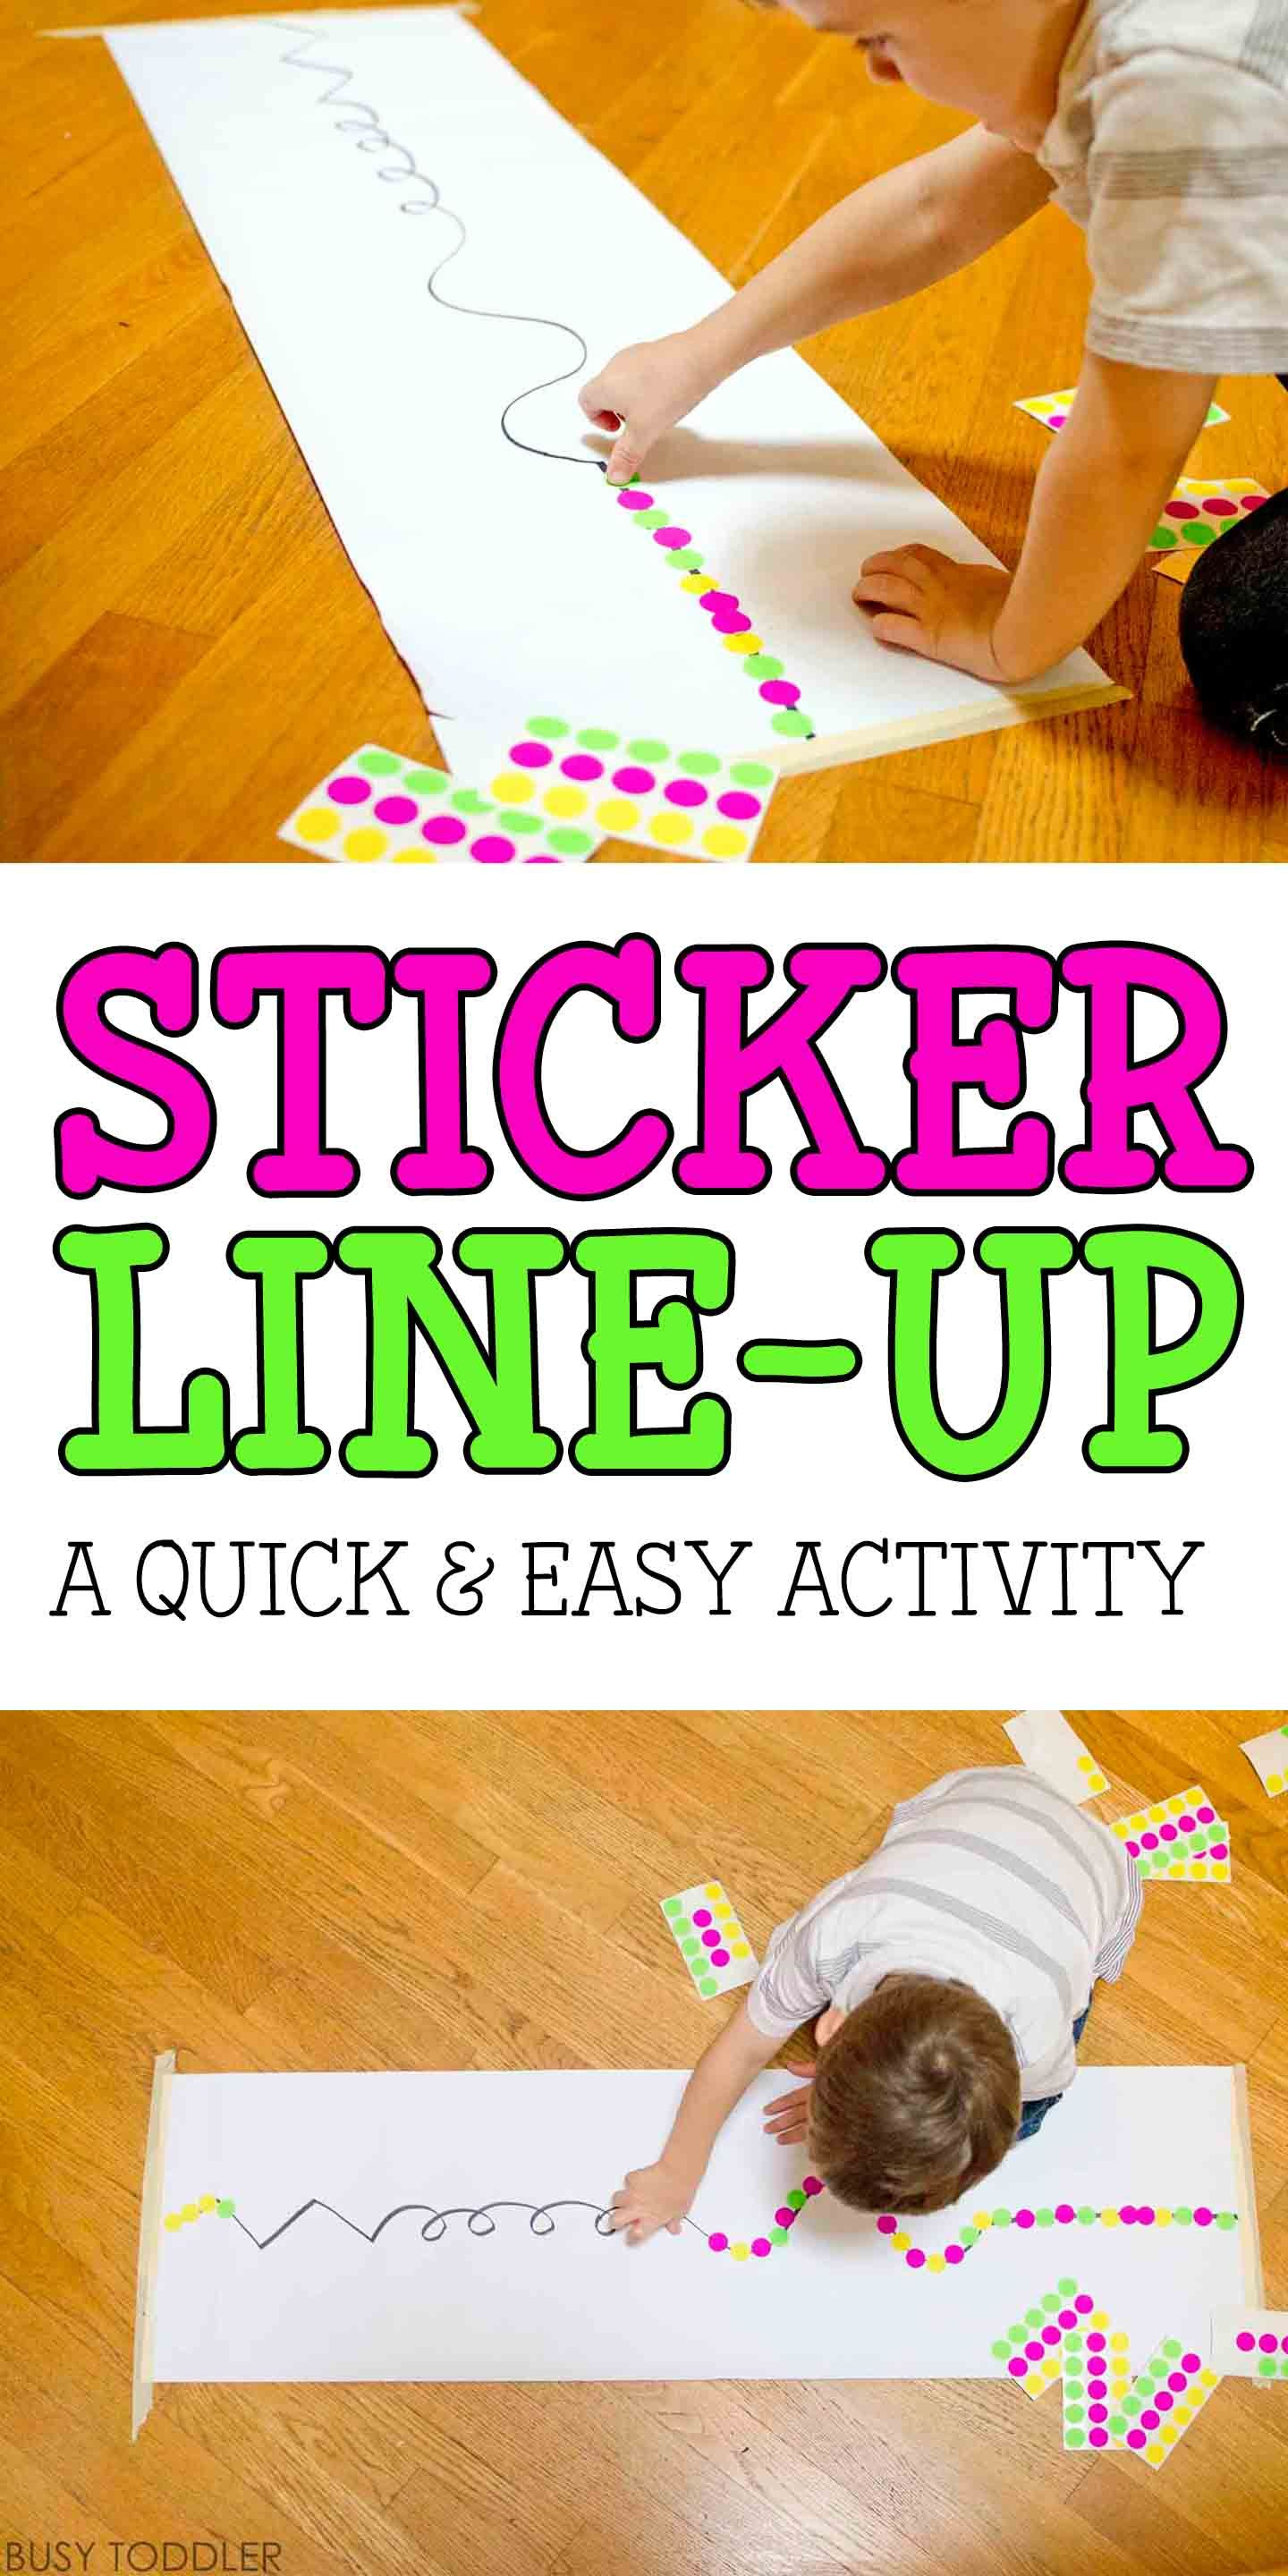 Sticker Line Up